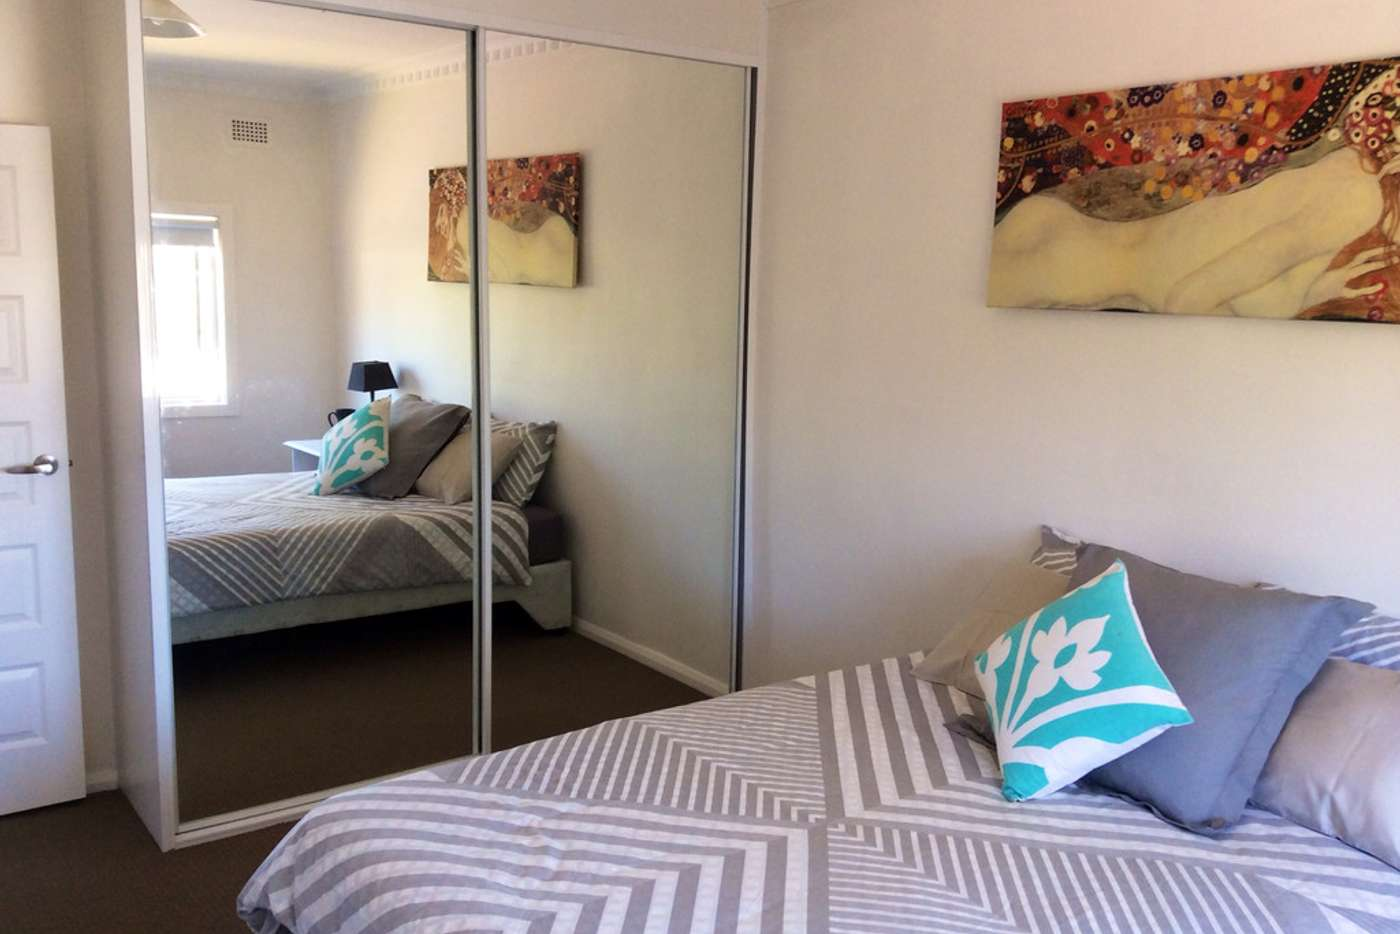 Main view of Homely apartment listing, 2/34 Auld Street, Terrigal NSW 2260